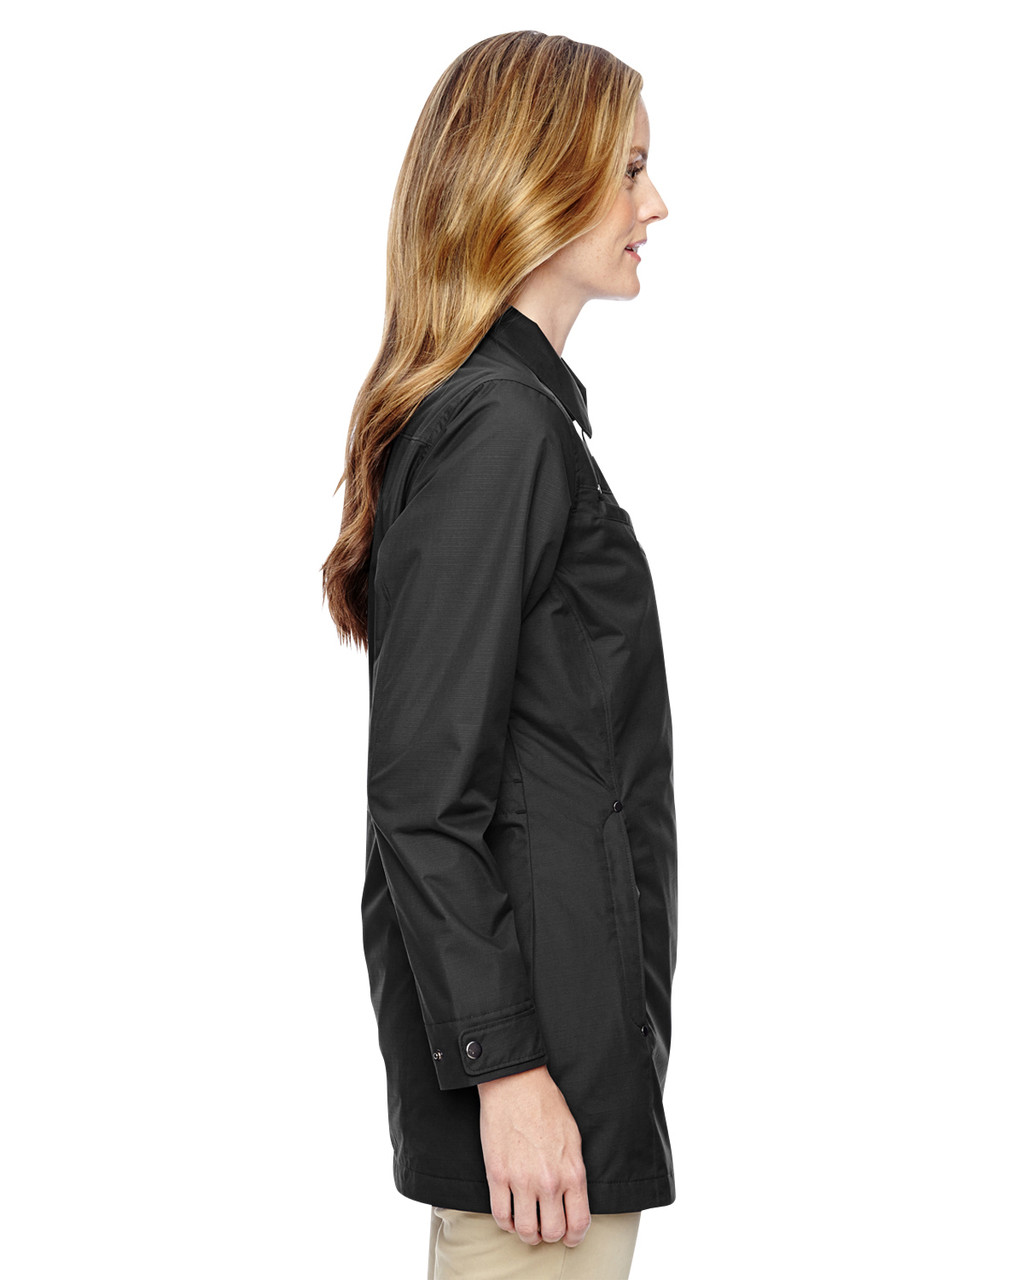 Black - side 78218 North End Excursion Ambassador Lightweight Jacket with Fold Down Collar | Blankclothing.ca